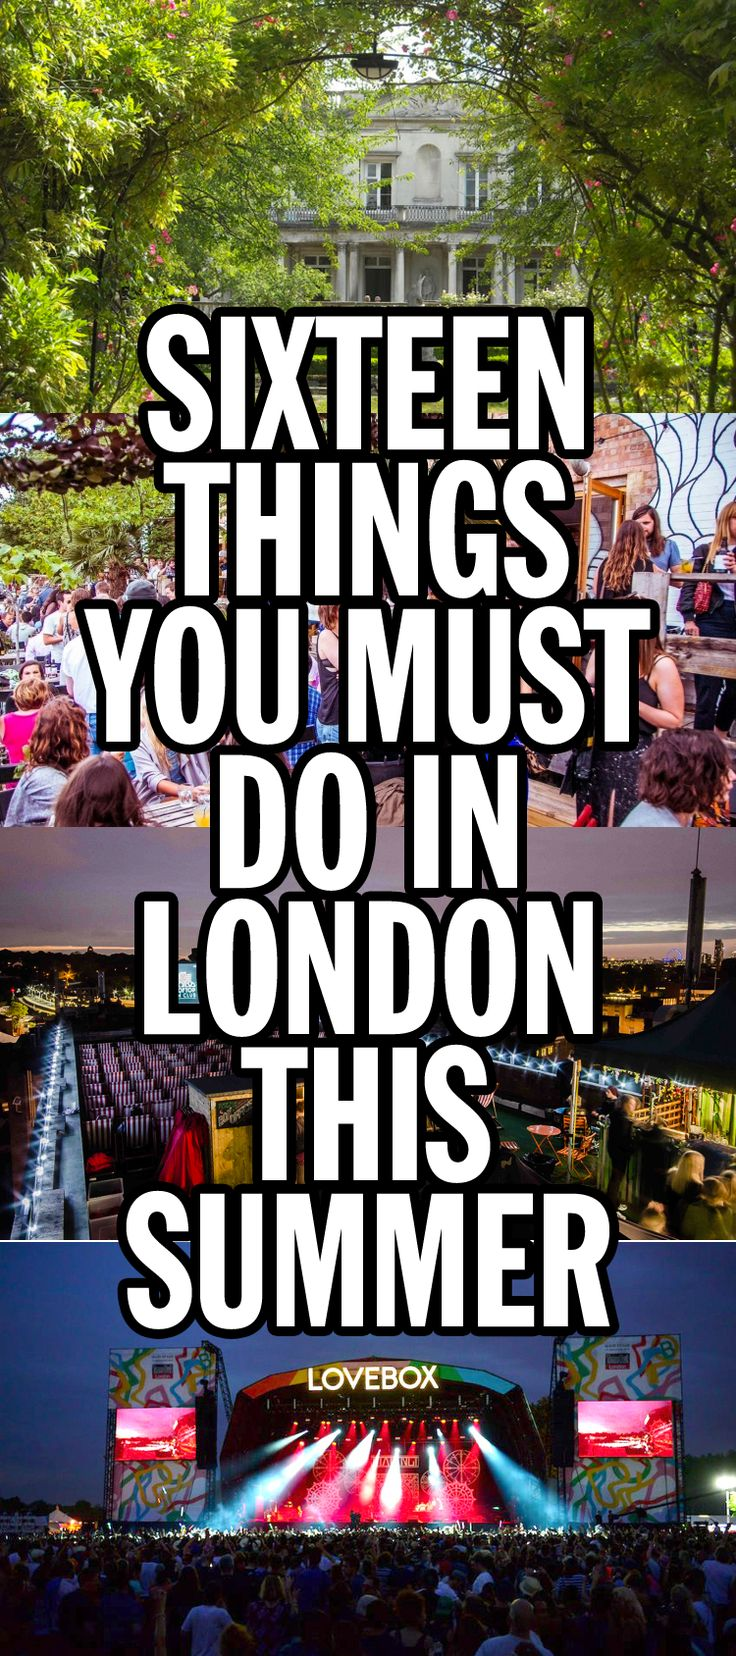 The summer has almost arrived in London! Here are the can't-miss events, gorgeous places to visit and classic traditions you ought to indulge in.